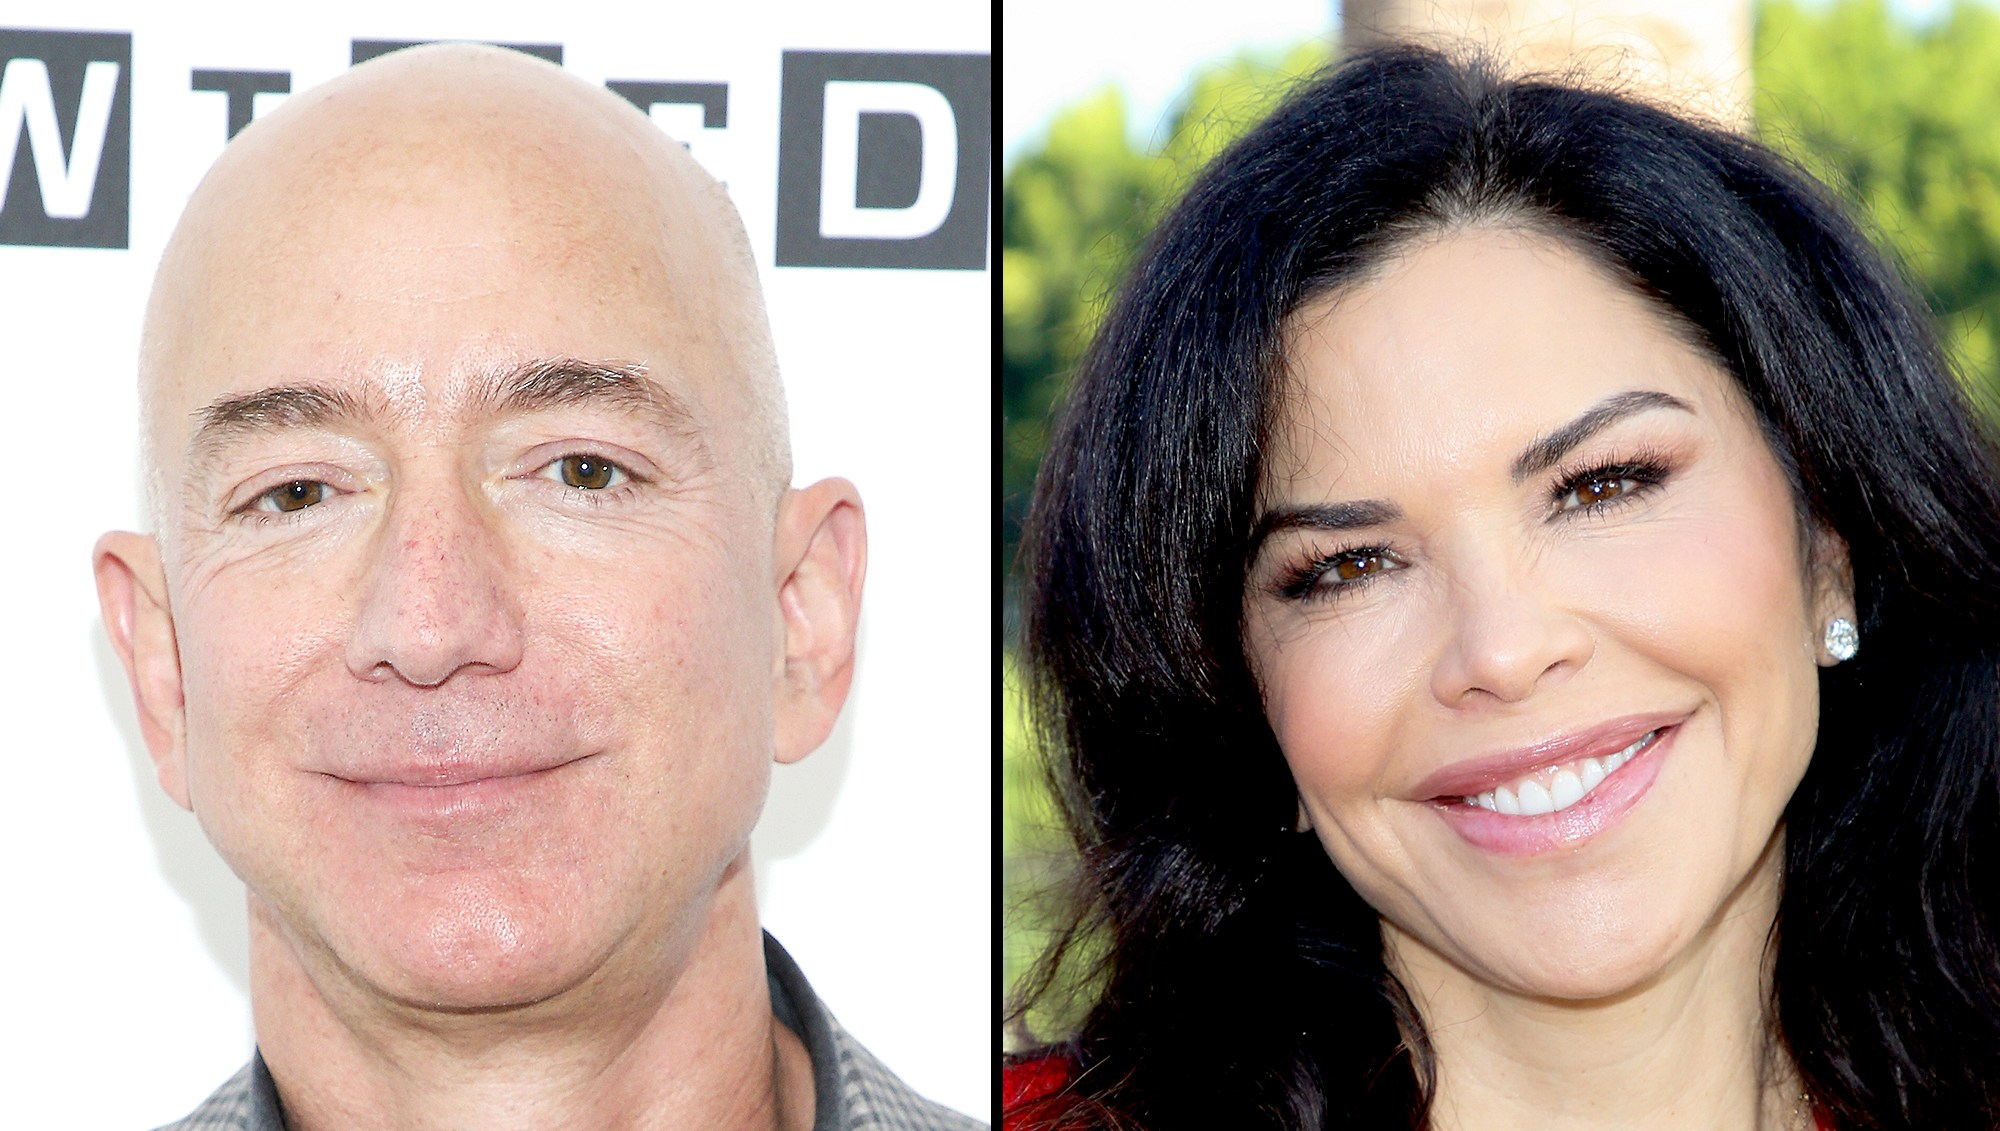 Jeff-Bezos-and-Lauren-Sanchez-dinner-date-affair